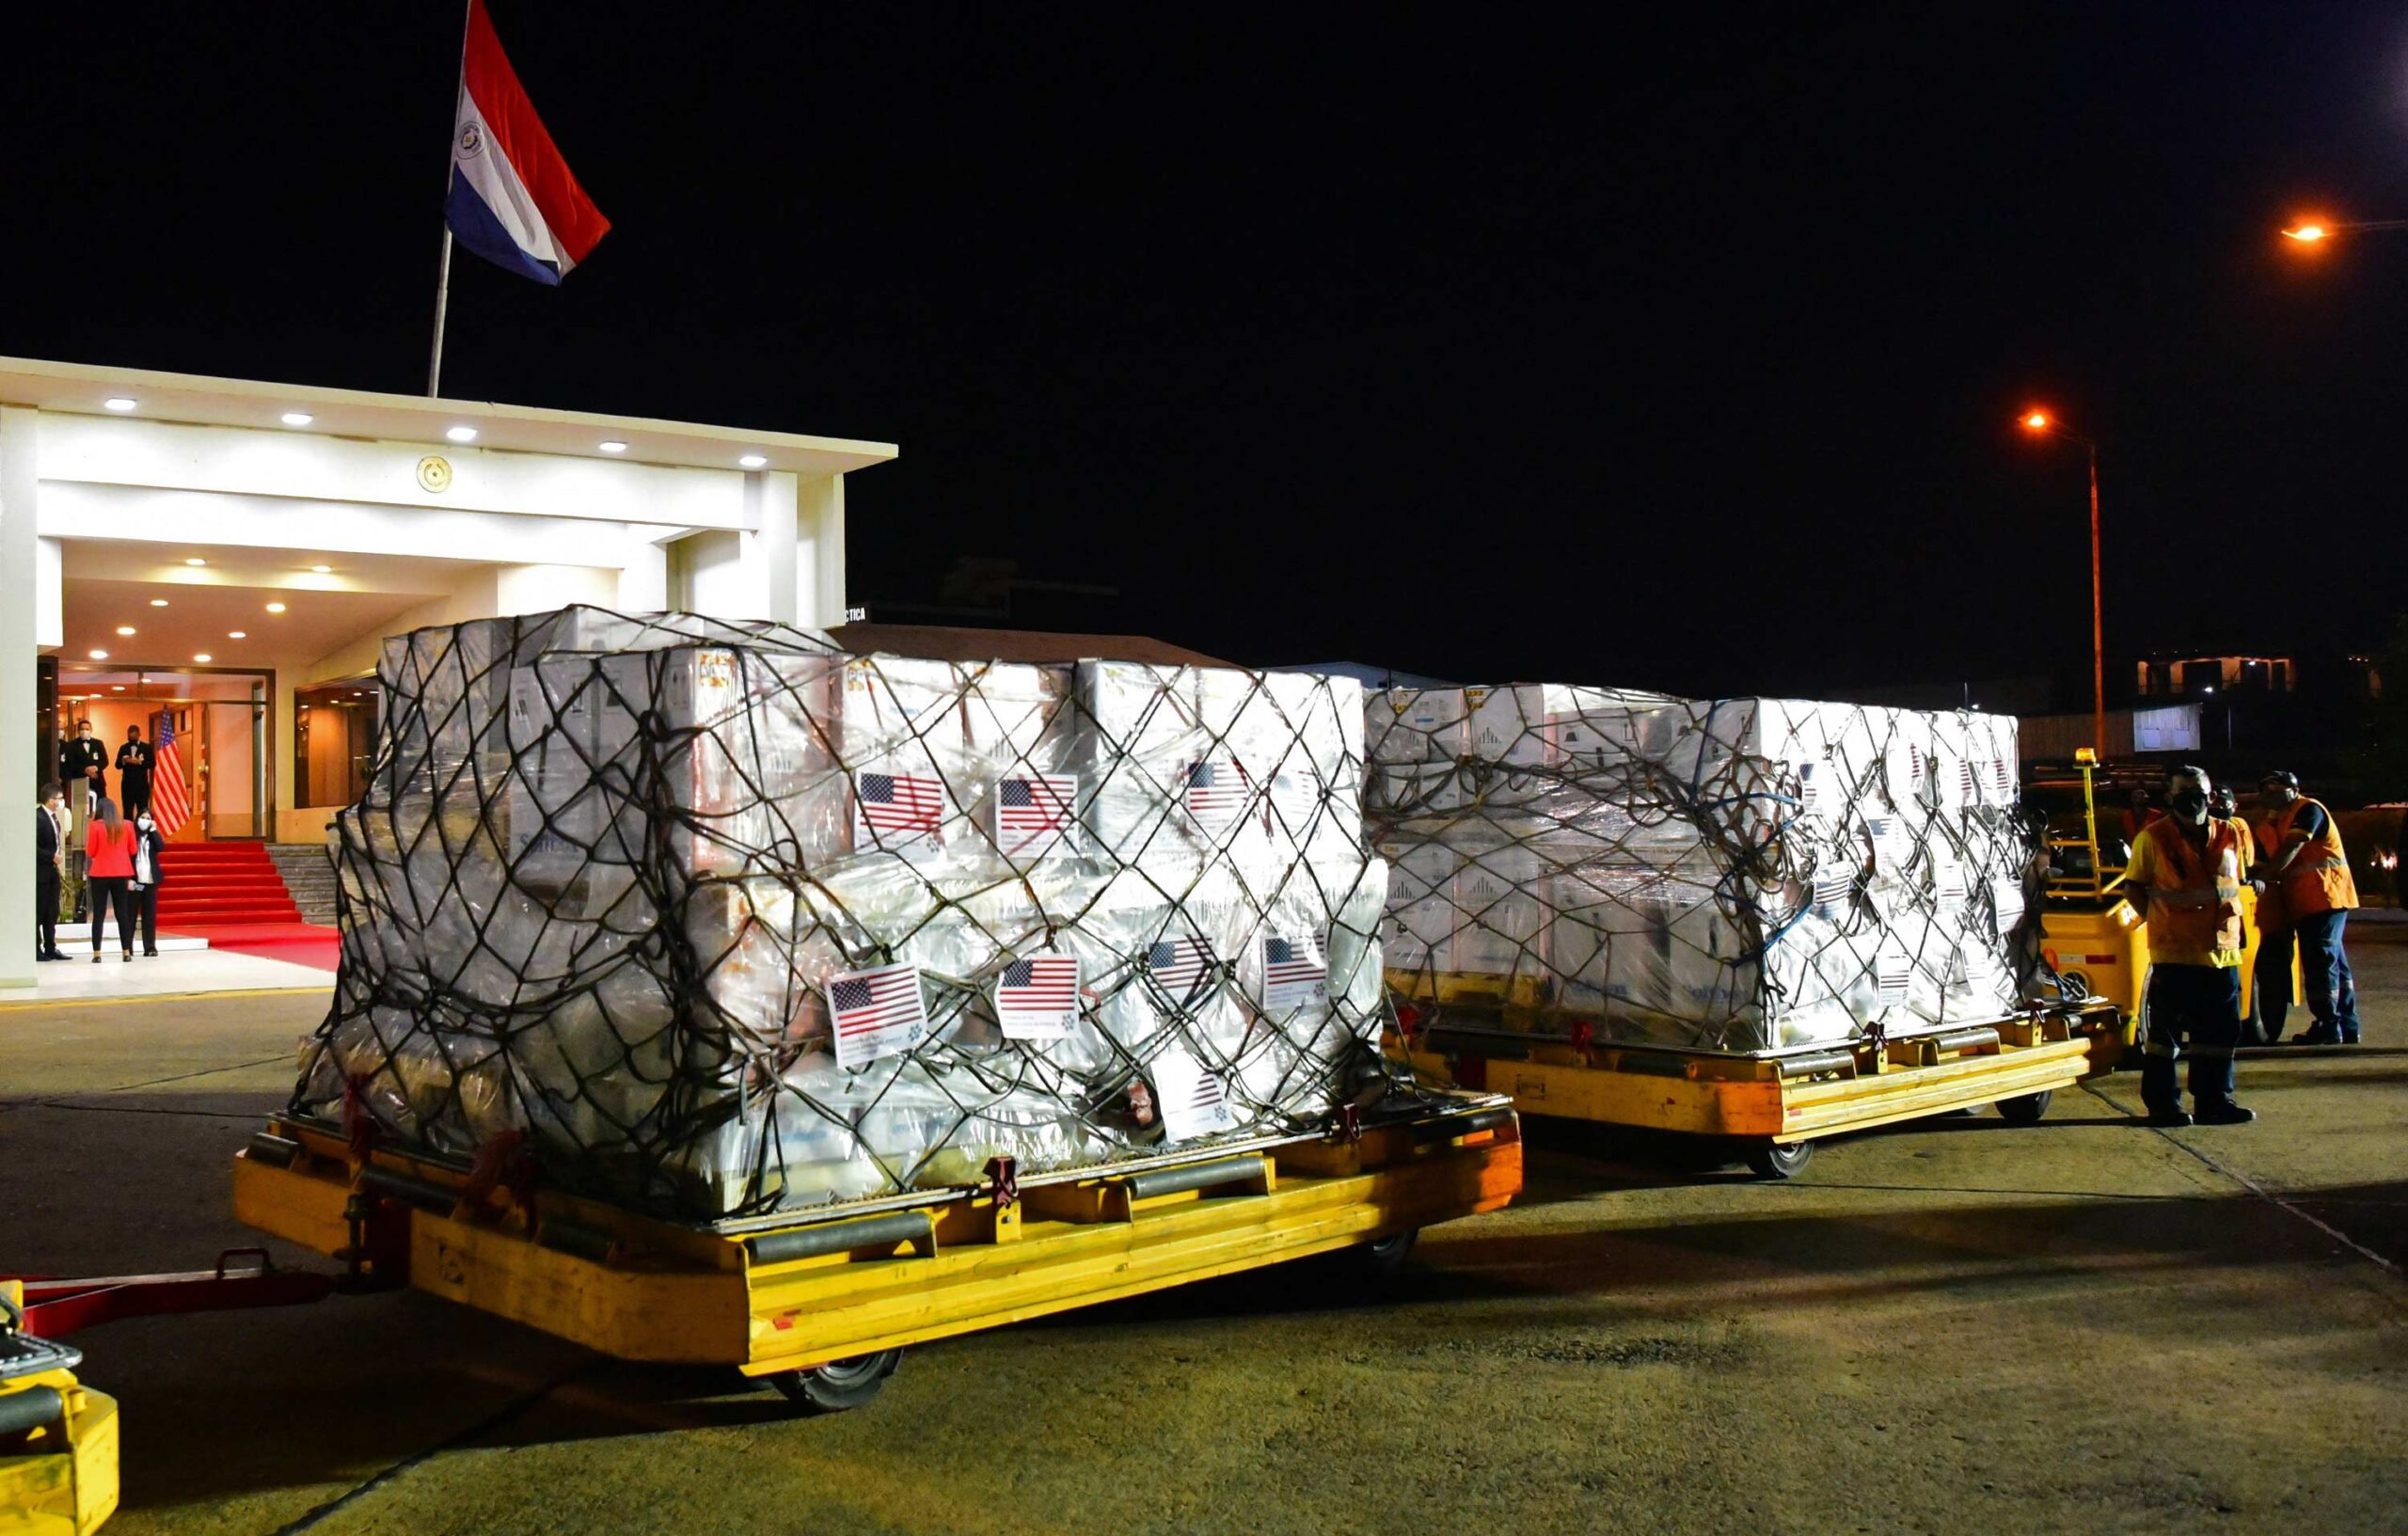 Boxes containing some of the one million doses of the Pfizer vaccine against Covid-19 donated by the United States, are seen upon arrival at the Silvio Pettirossi International Airport, in Luque, Paraguay, on July 9. The United States is set to significantly increase the amount of Covid-19 vaccines it will ship to foreign nations beginning in 2022 in an effort to end the pandemic worldwide, the White House announced Wednesday. Mandatory Credit: